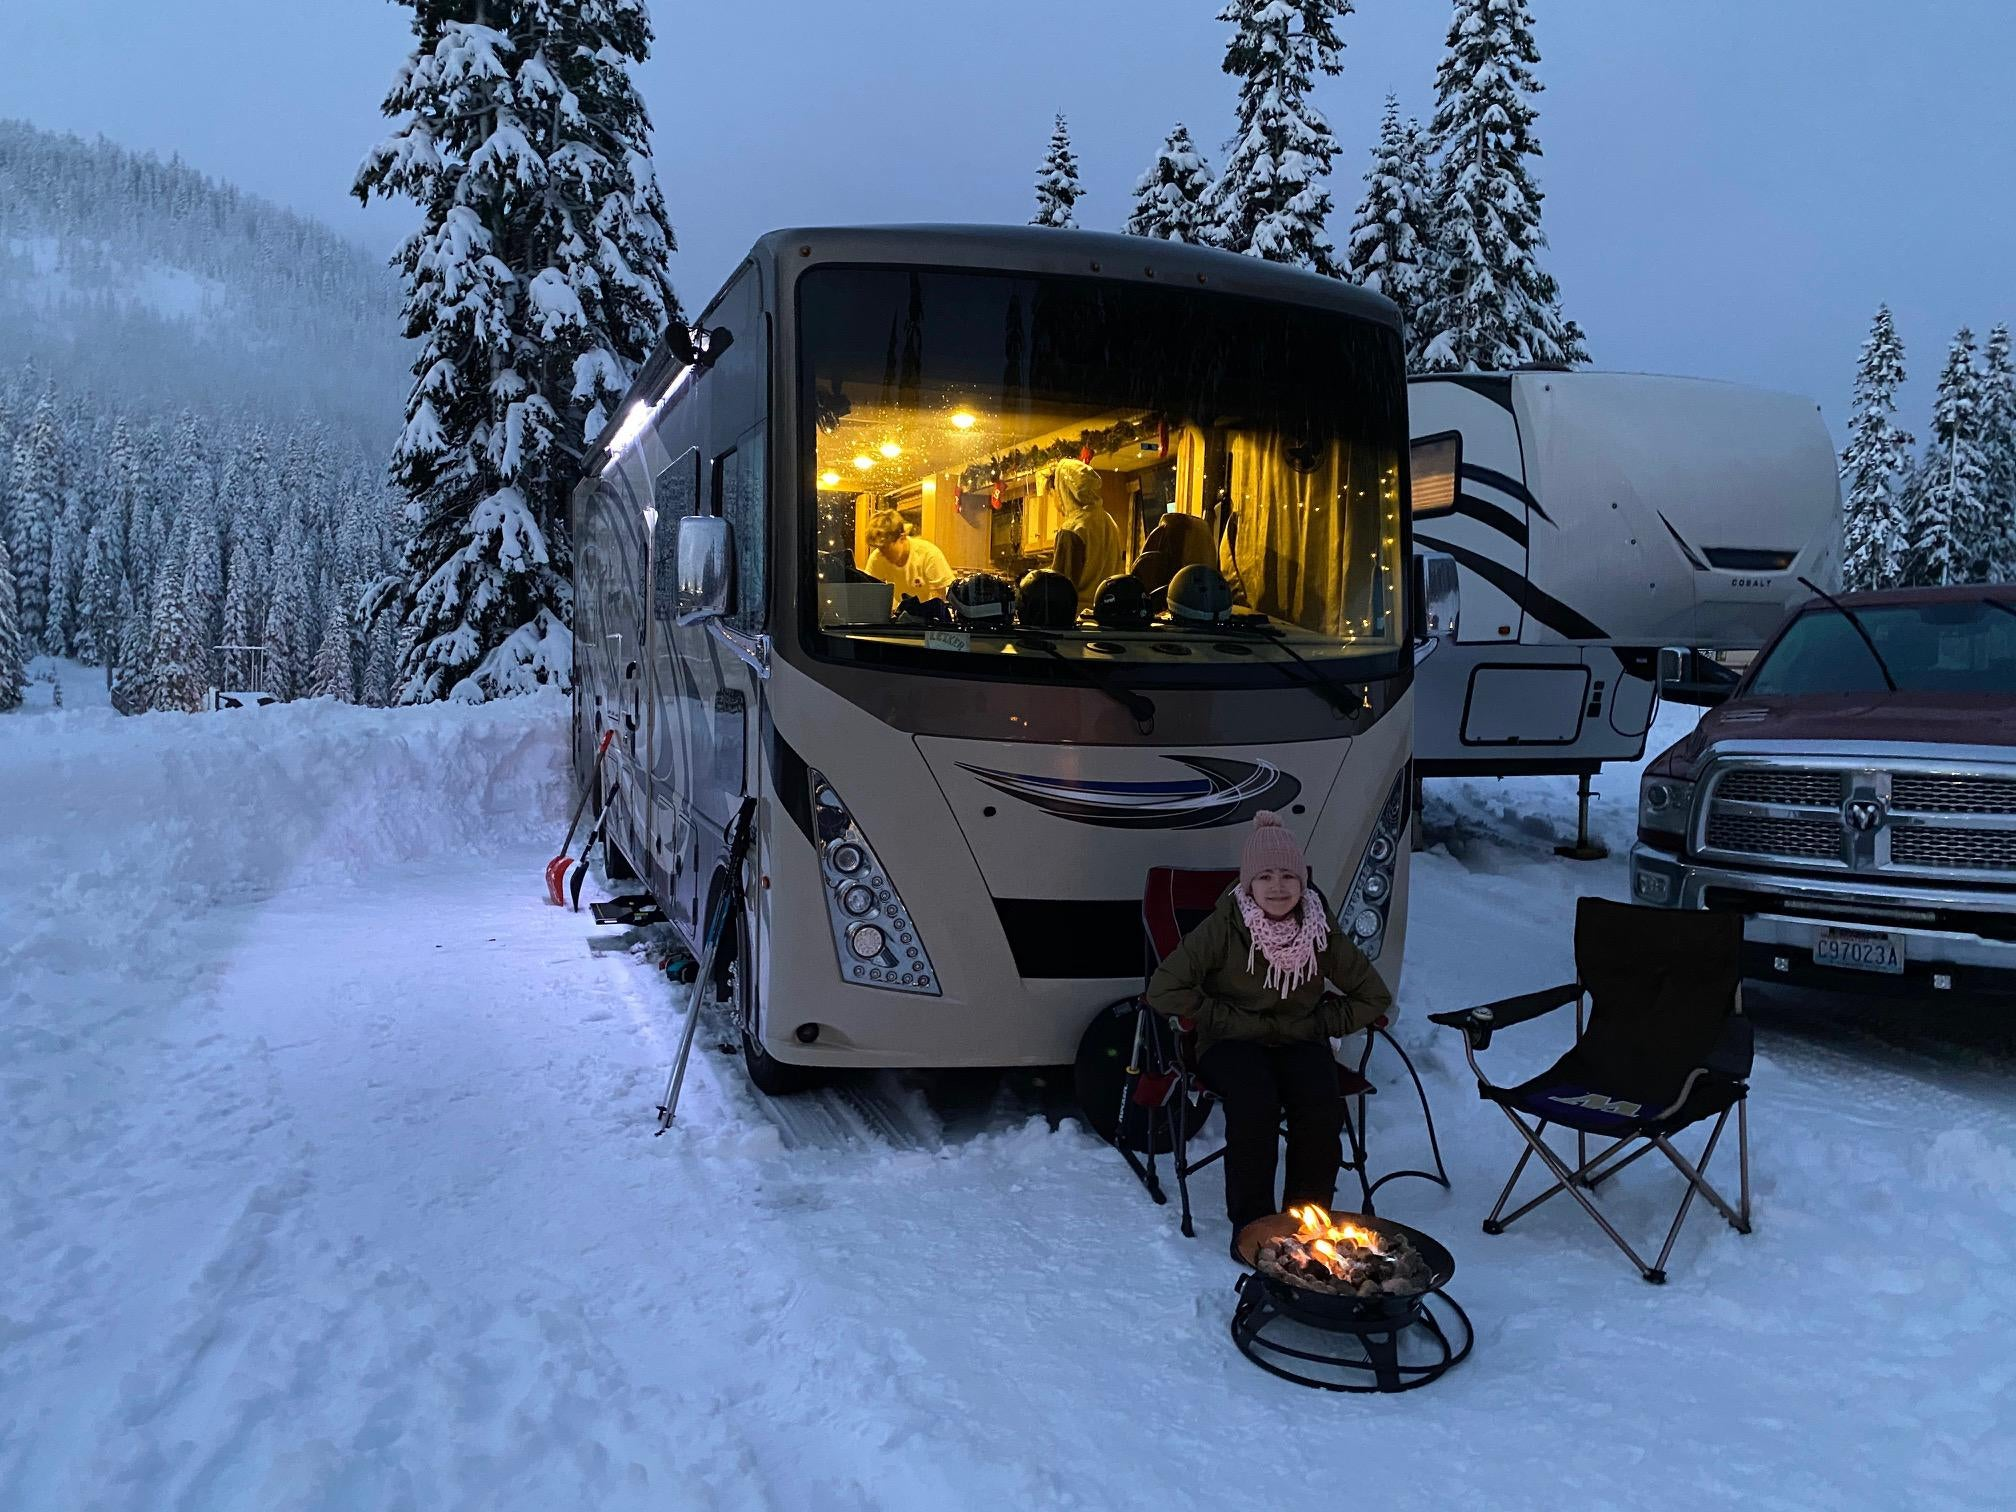 First weekend of winter camping!